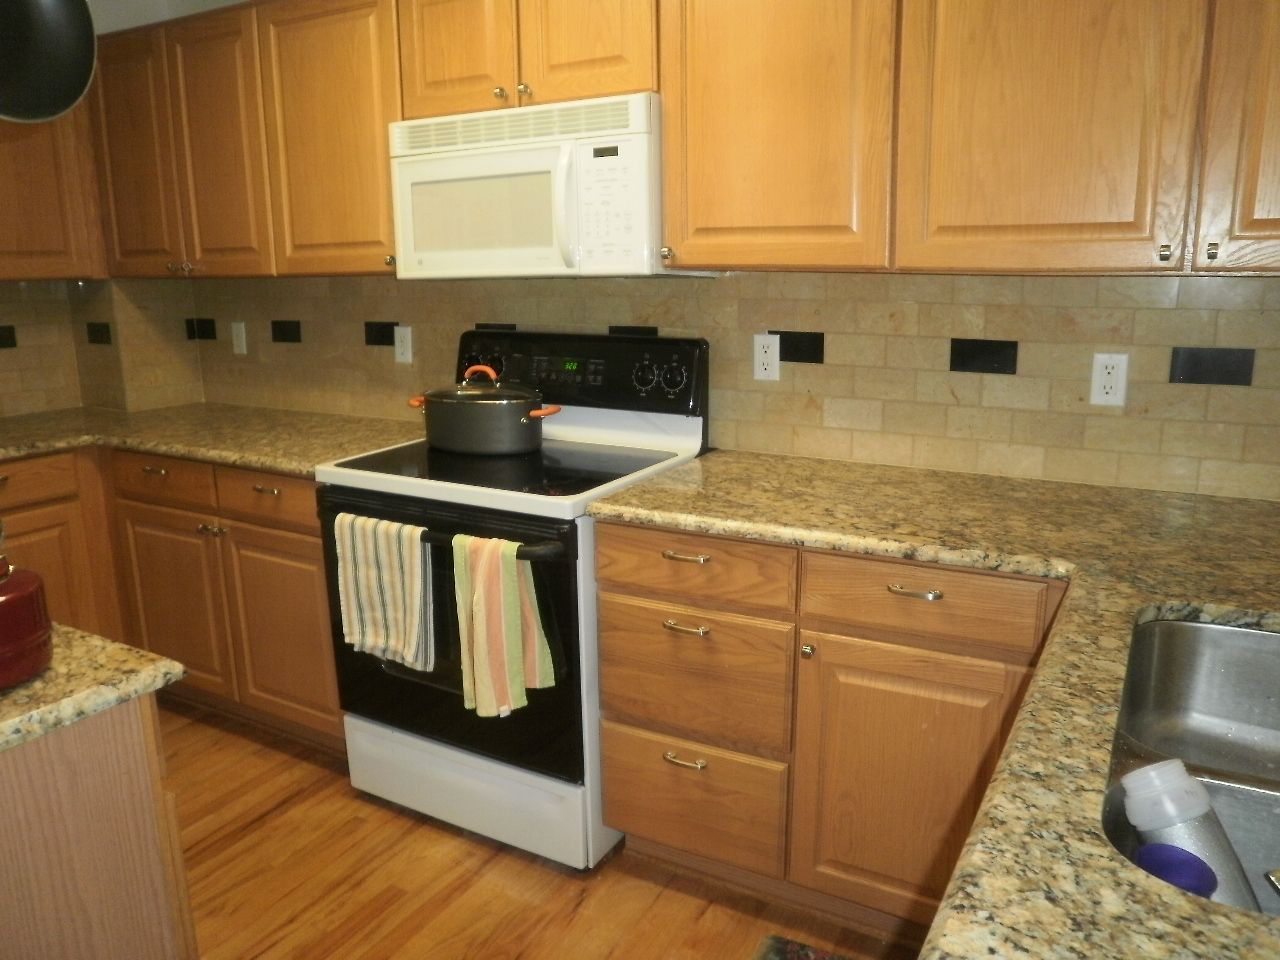 Light Oak Cabinets With Backsplashes Installations A Division Of Front Range Backsplash Backsplash Giallo Ornamental Granite Marble Backsplash